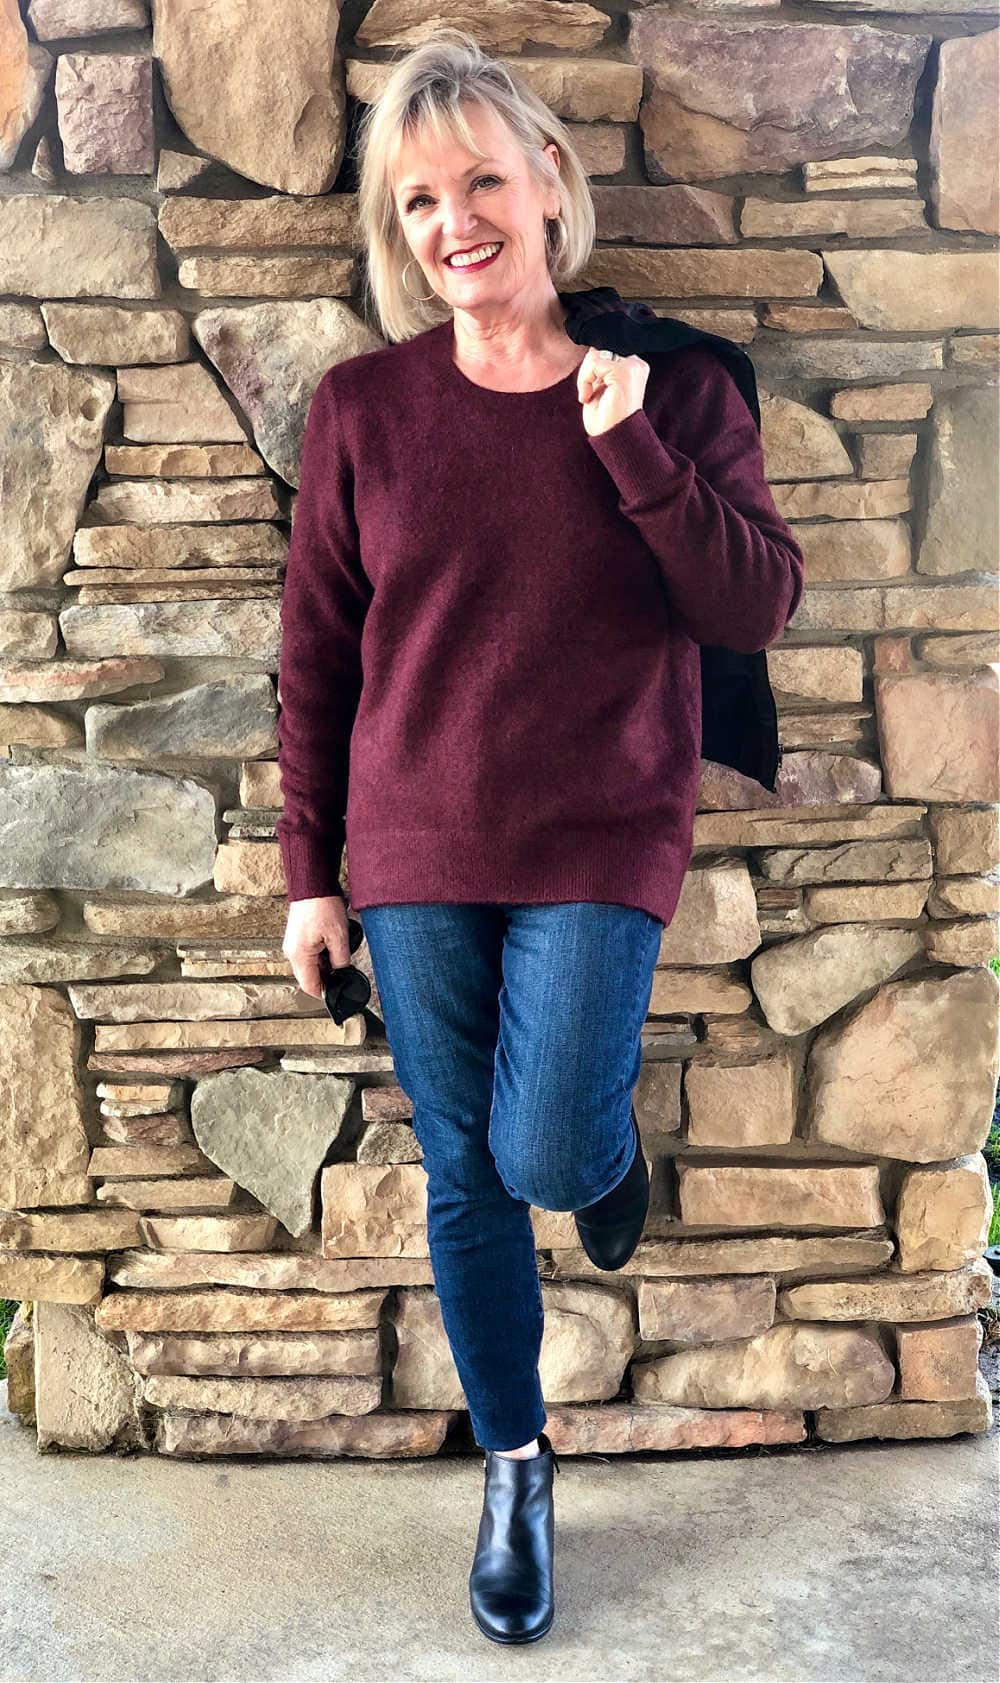 fashion blogger jennifer conolly wearign burgundy sweater by Liverpool Los Angeles